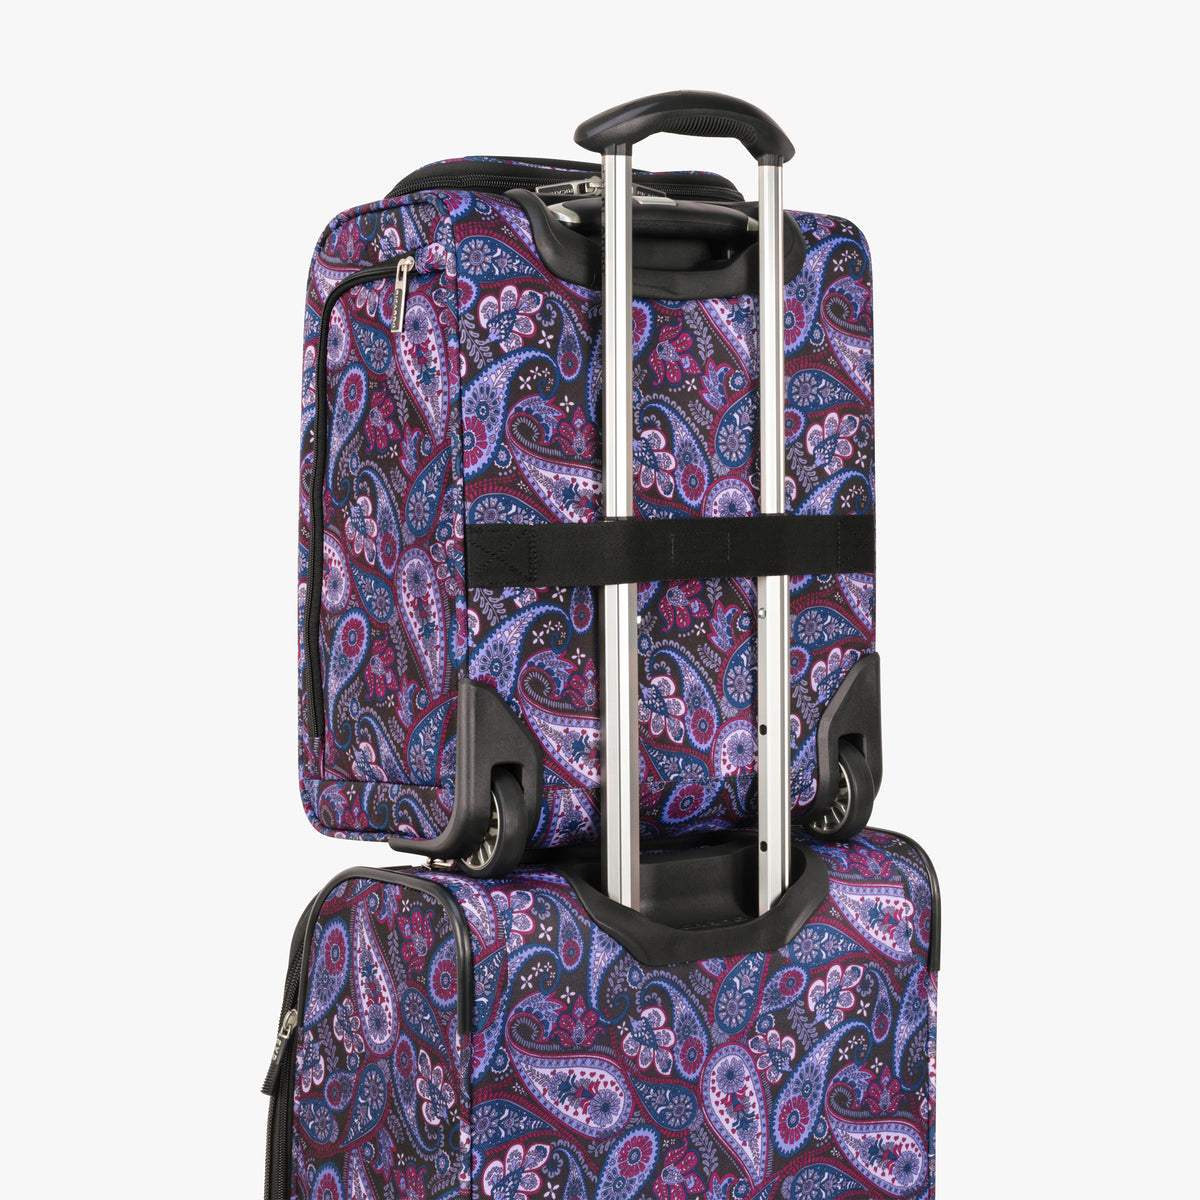 4c1c40167fa5 Mar Vista 2.0 Carry On Under Seat Luggage - Rolling Tote Bag ...